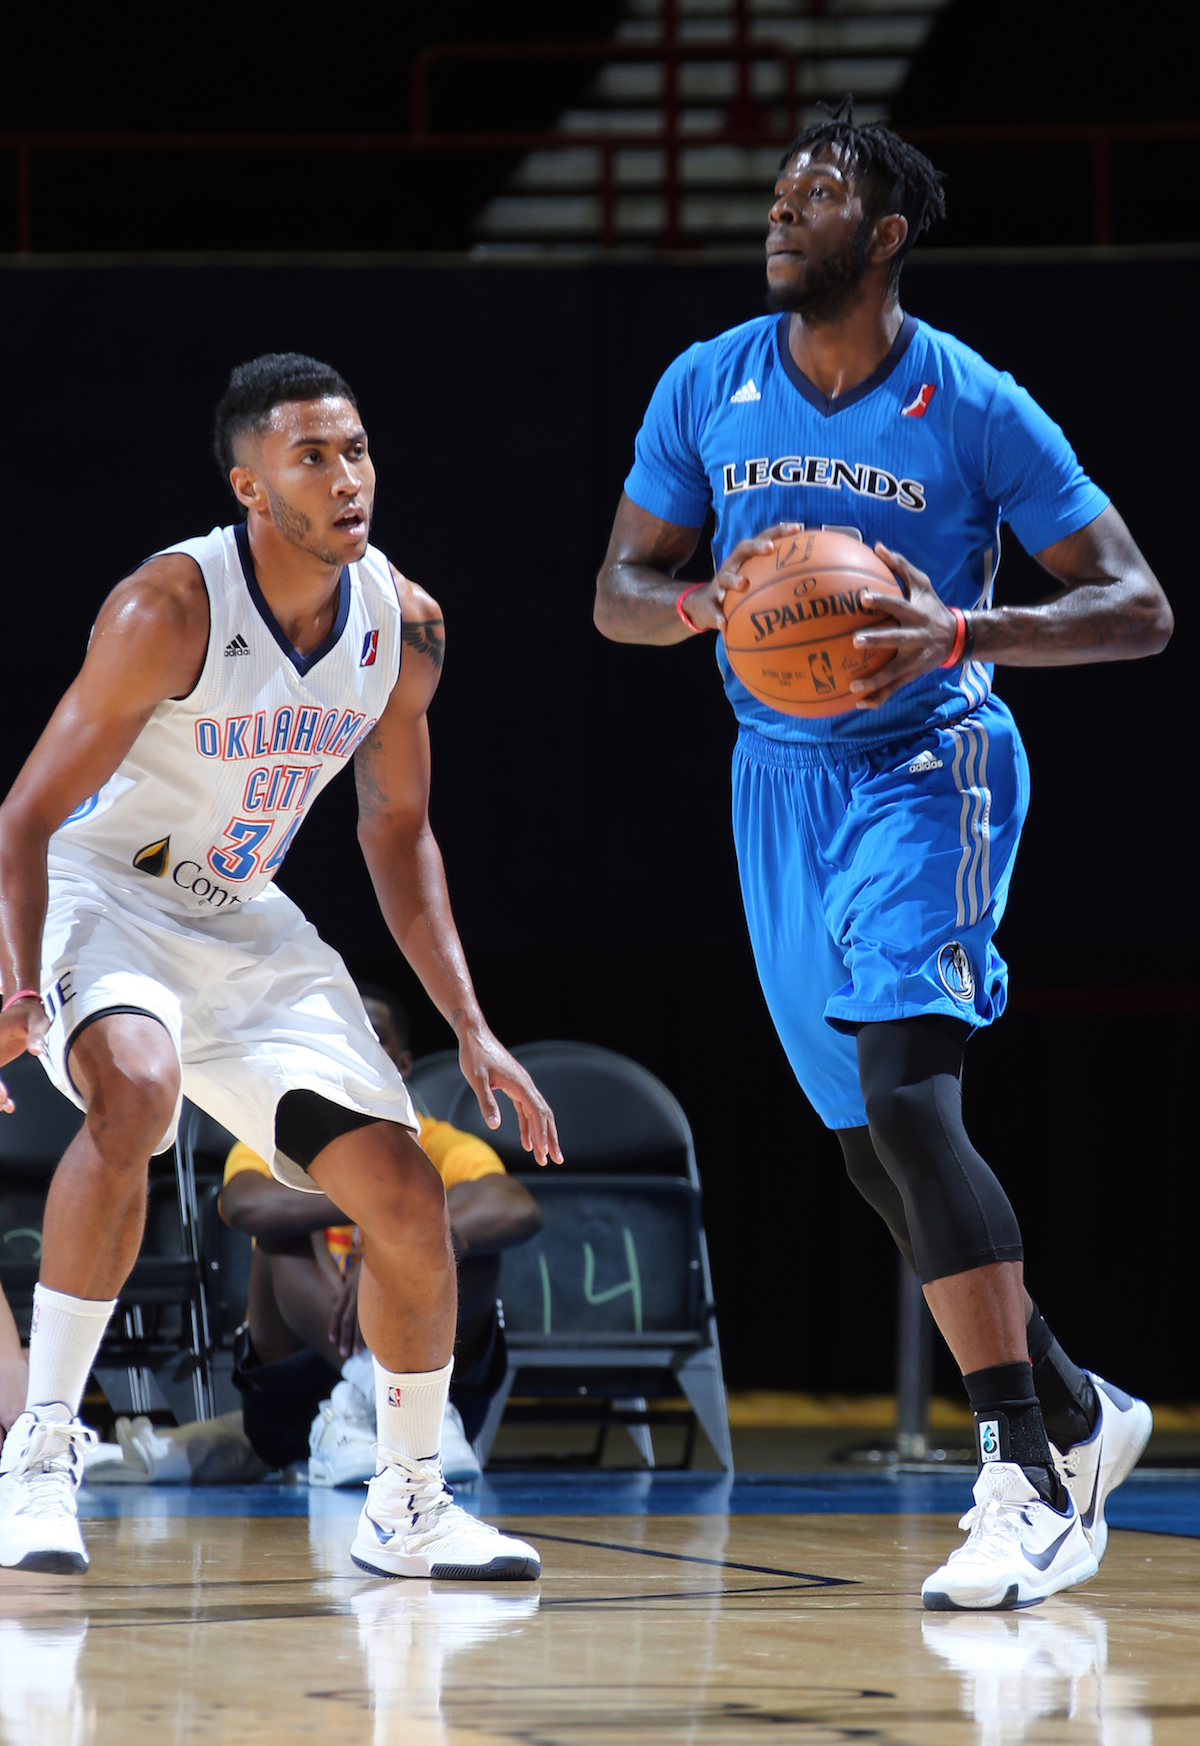 OKLAHOMA CITY, OK - NOVEMBER 15: Josh Huestis #34 of the Oklahoma City Blue defends against Jamil Wilson #13 of the Texas Legends during an NBA D-League game on NOVEMBER 15, 2015 at the Cox Convention Center in Oklahoma City, Oklahoma. NOTE TO USER: User expressly acknowledges and agrees that, by downloading and or using this Photograph, user is consenting to the terms and conditions of the Getty Images License Agreement. Mandatory Copyright Notice: Copyright 2015 NBAE (Photo by Layne Murdoch/NBAE via Getty Images)